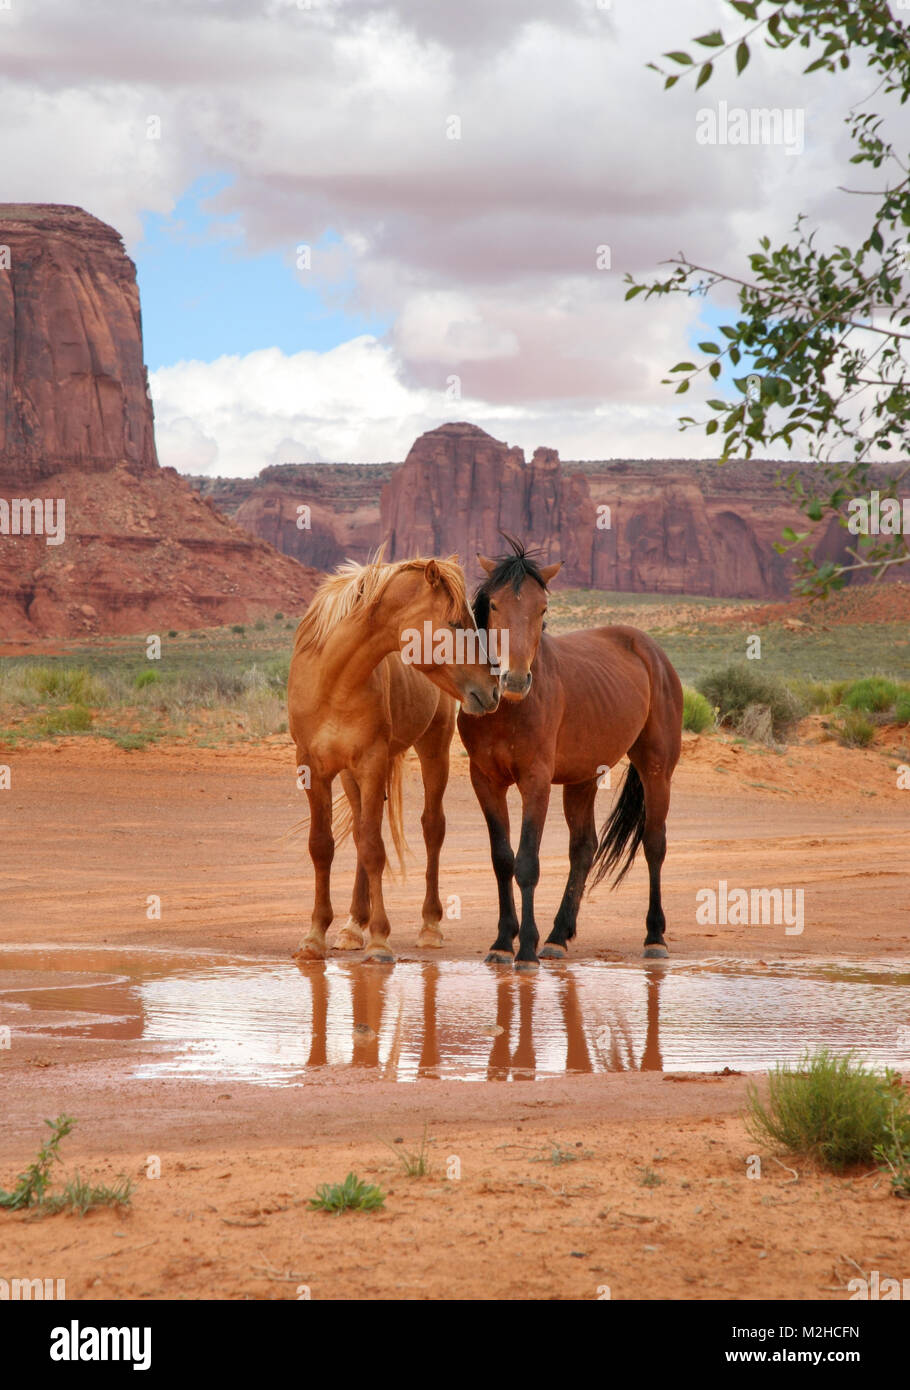 two wild horses showing affection - Stock Image